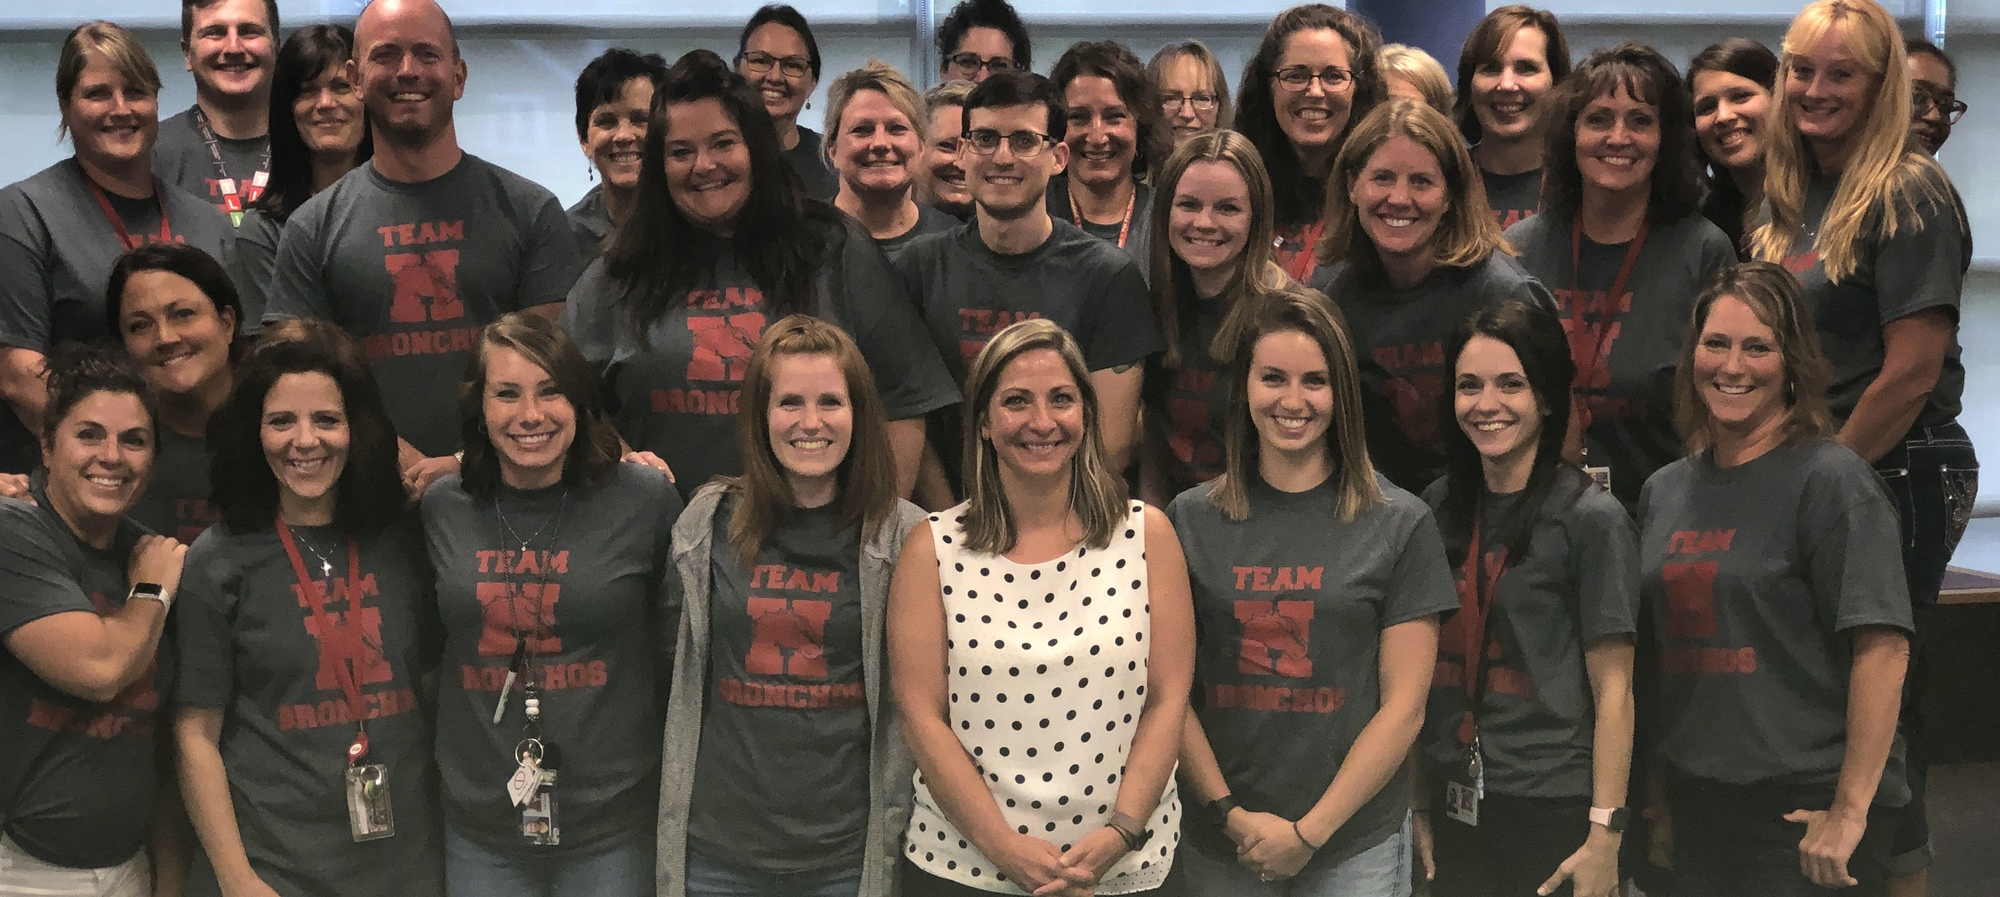 Holly elementary staff in their Team Bronchos shirts